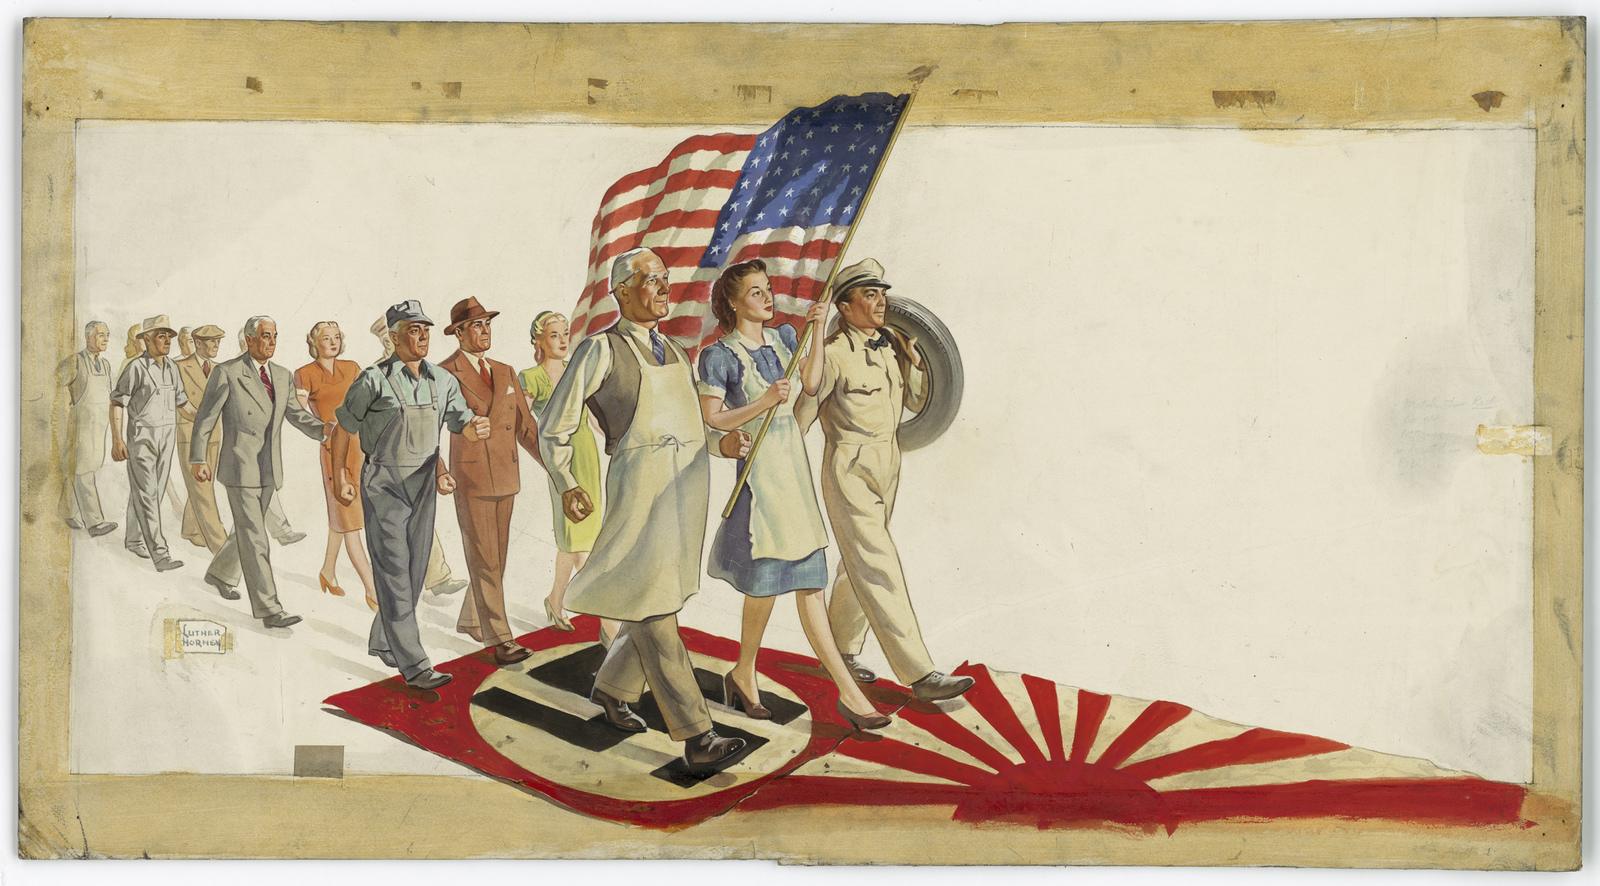 [People in three different occupations walking (marching) on the flags of Germany and Japan.  The first three people are a grocer, a housewife carrying an American flag, and service station attendant carrying a tire. To inspire folks on the homefront.] [Luther Horney]